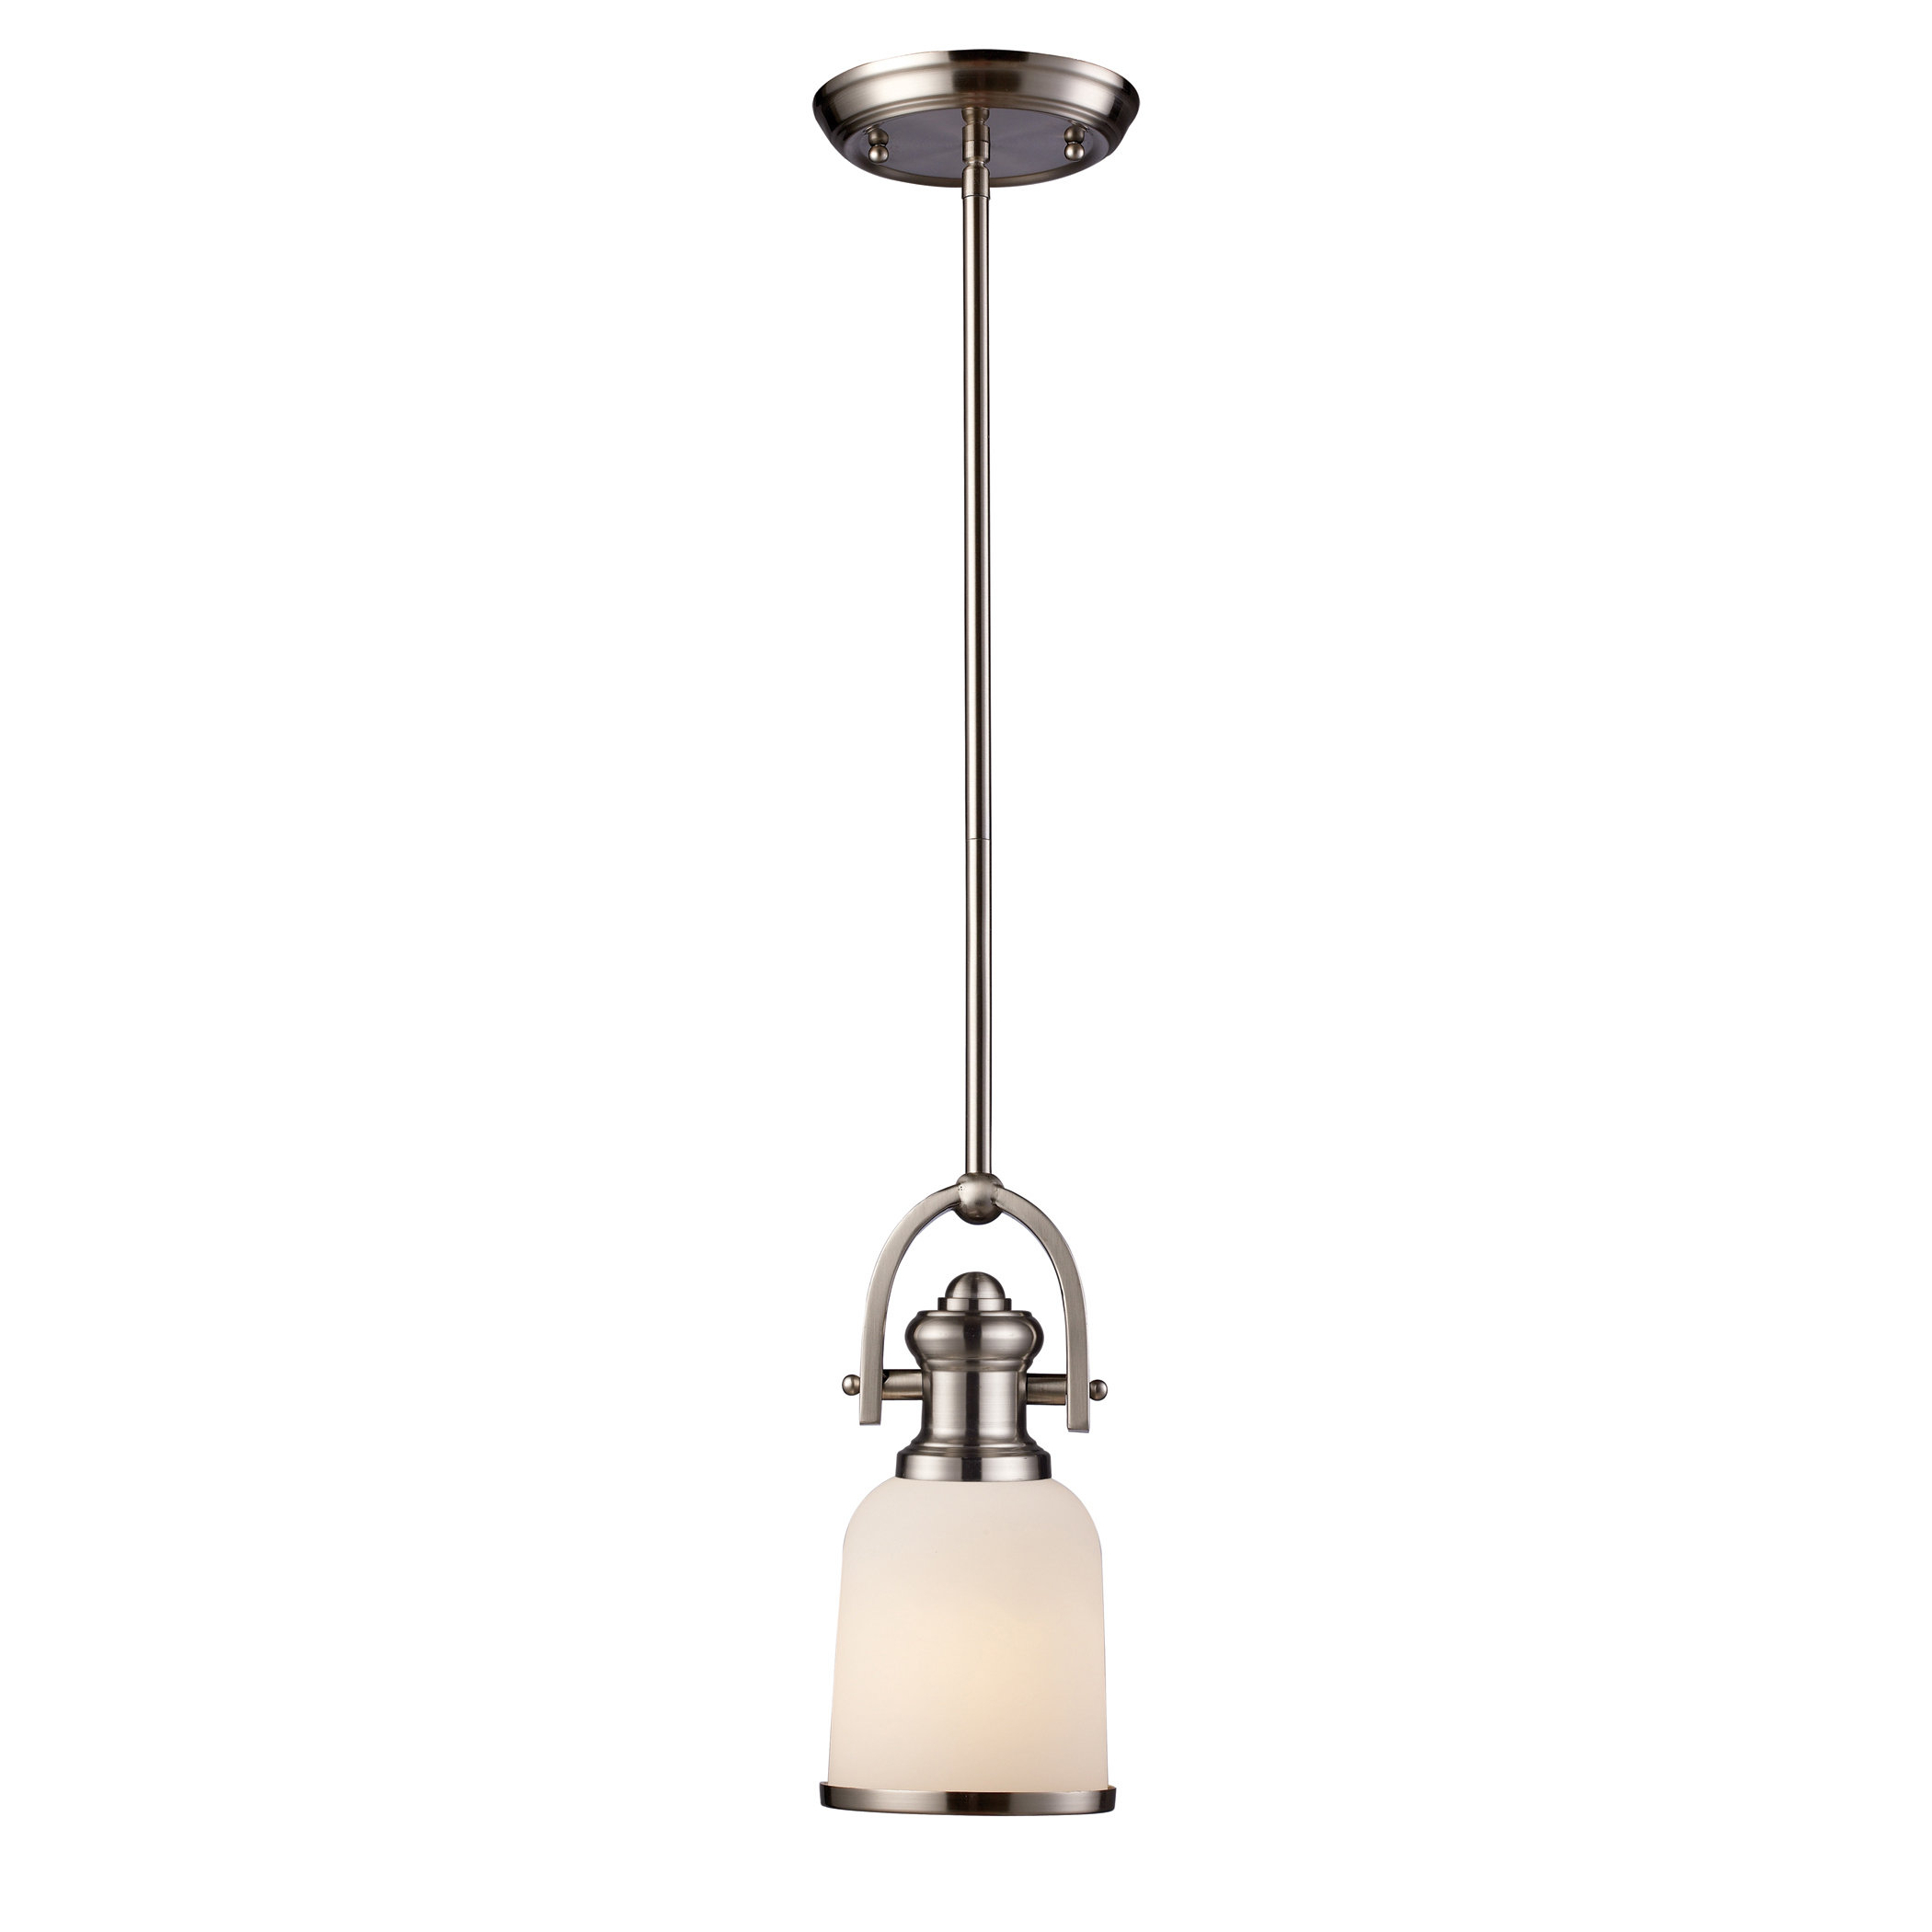 Preferred Boornazian 1 Light Cone Pendant Within Abernathy 1 Light Dome Pendants (View 18 of 25)